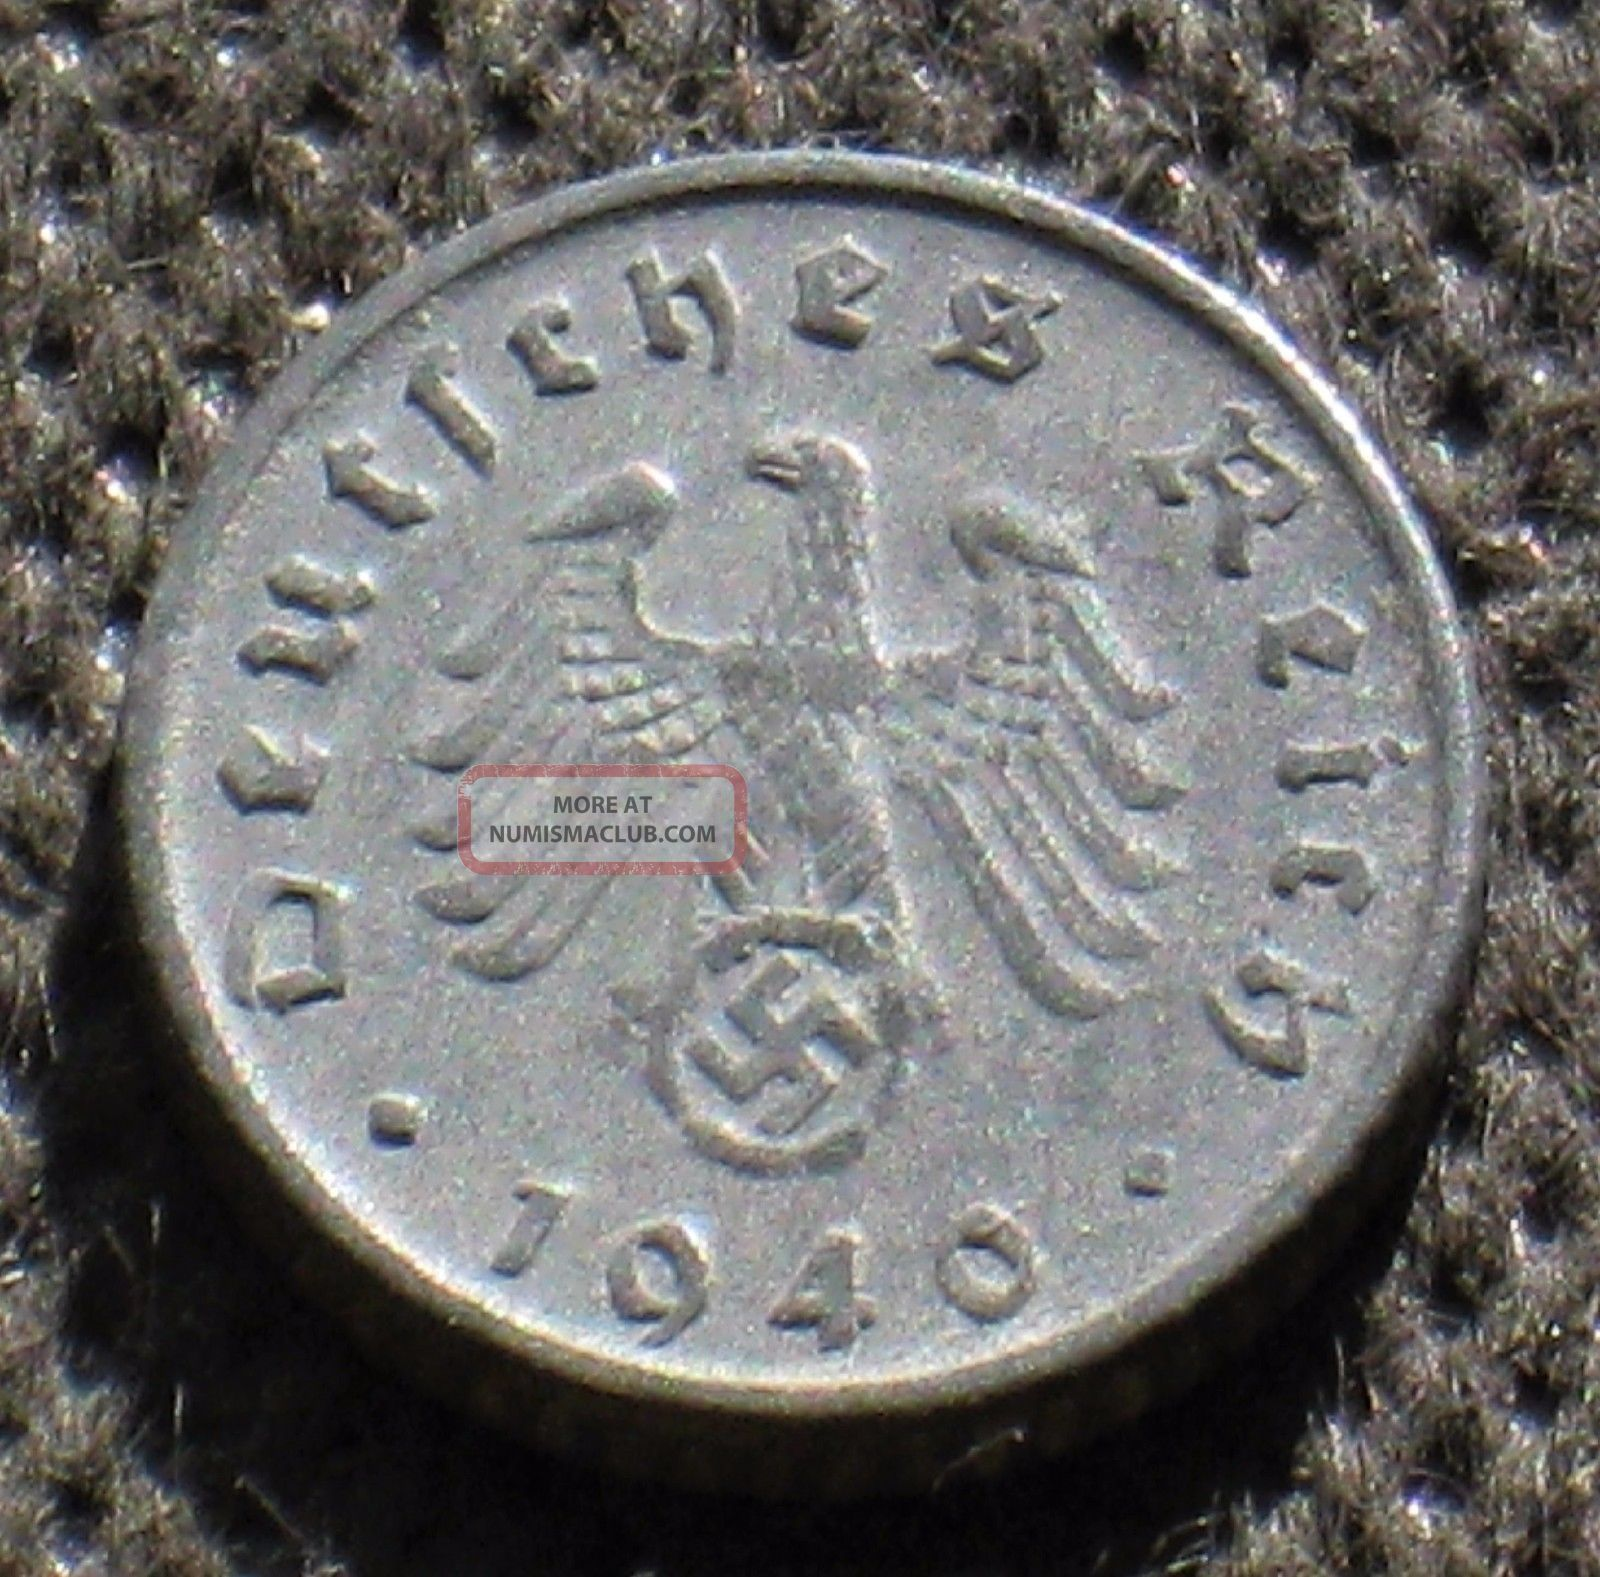 Coin Nazi Germany 5 Reichspfennig 1940 F Stuttgart W/ Swastika World War Ii Germany photo